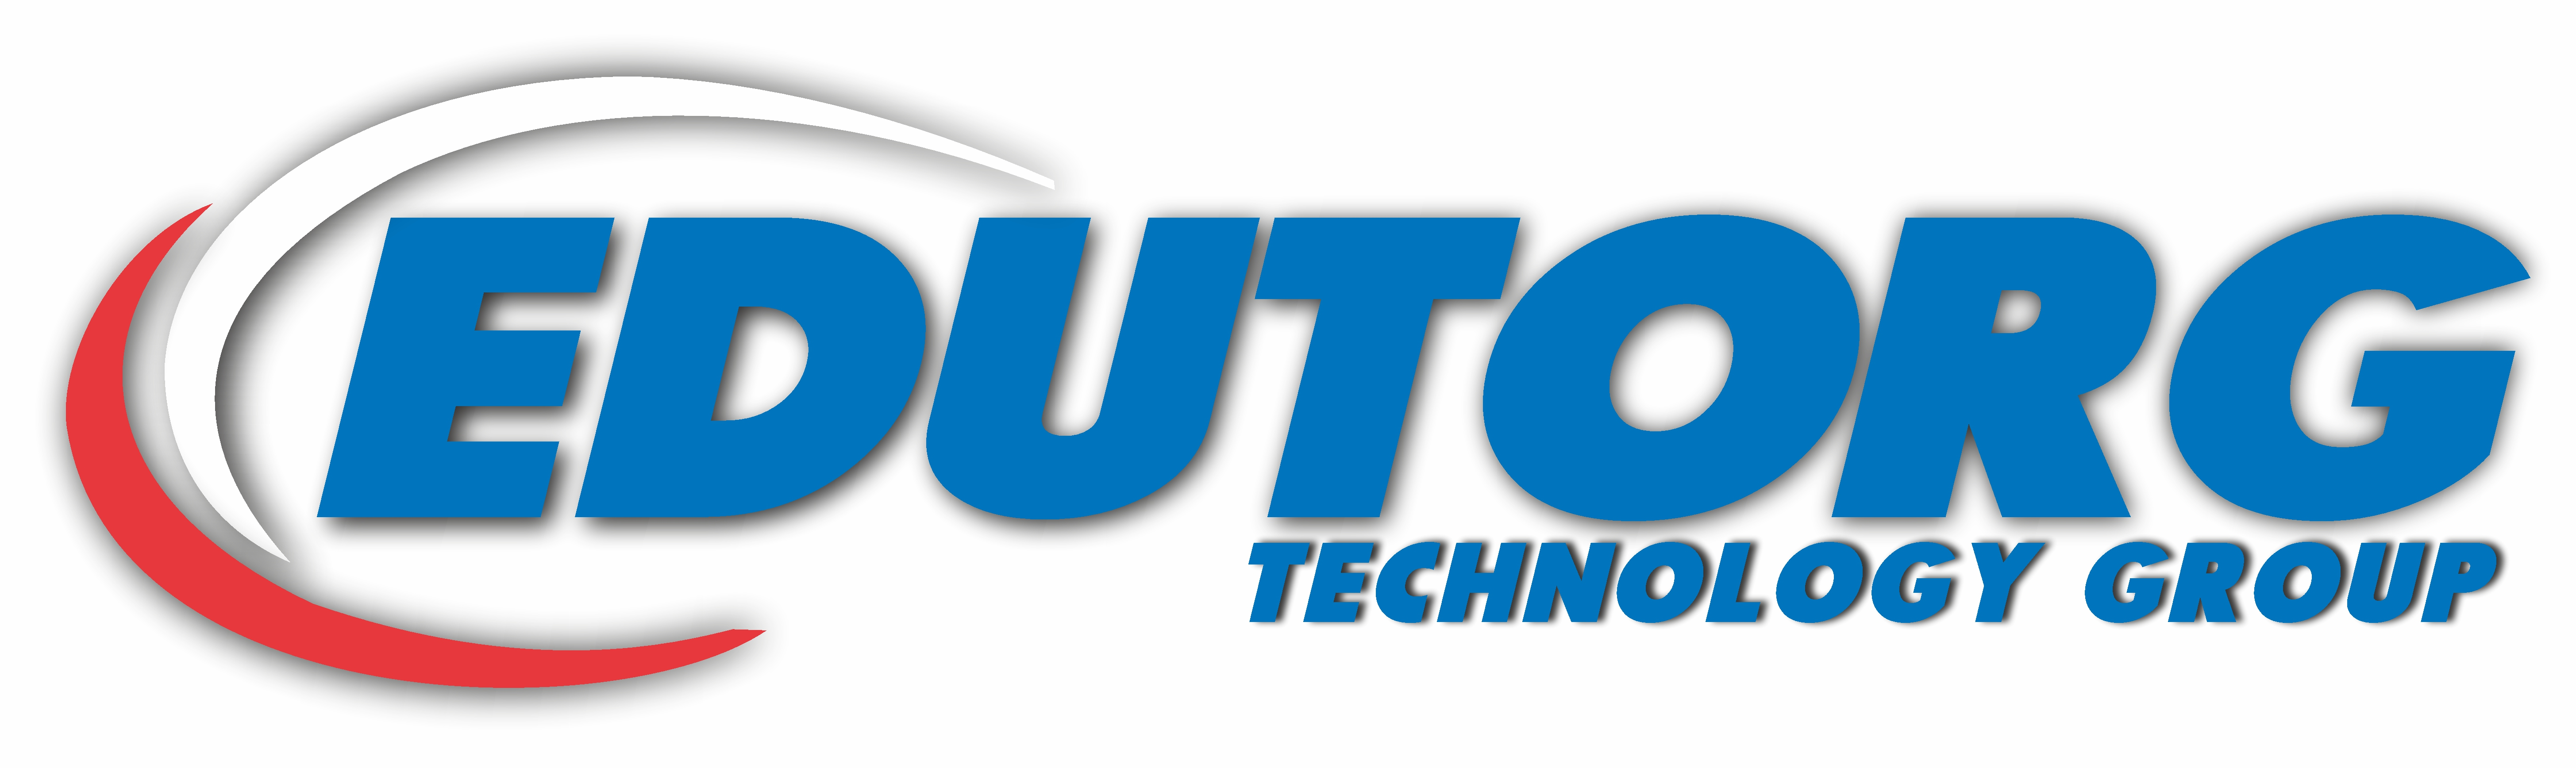 EDUTORG technology group